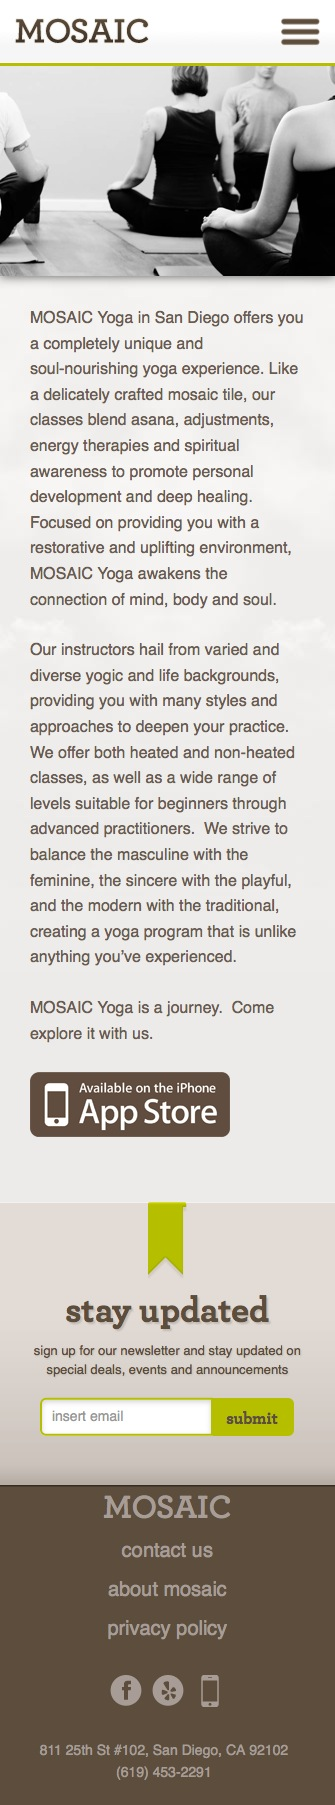 ignyte web design agency responsive website design mosaic yoga